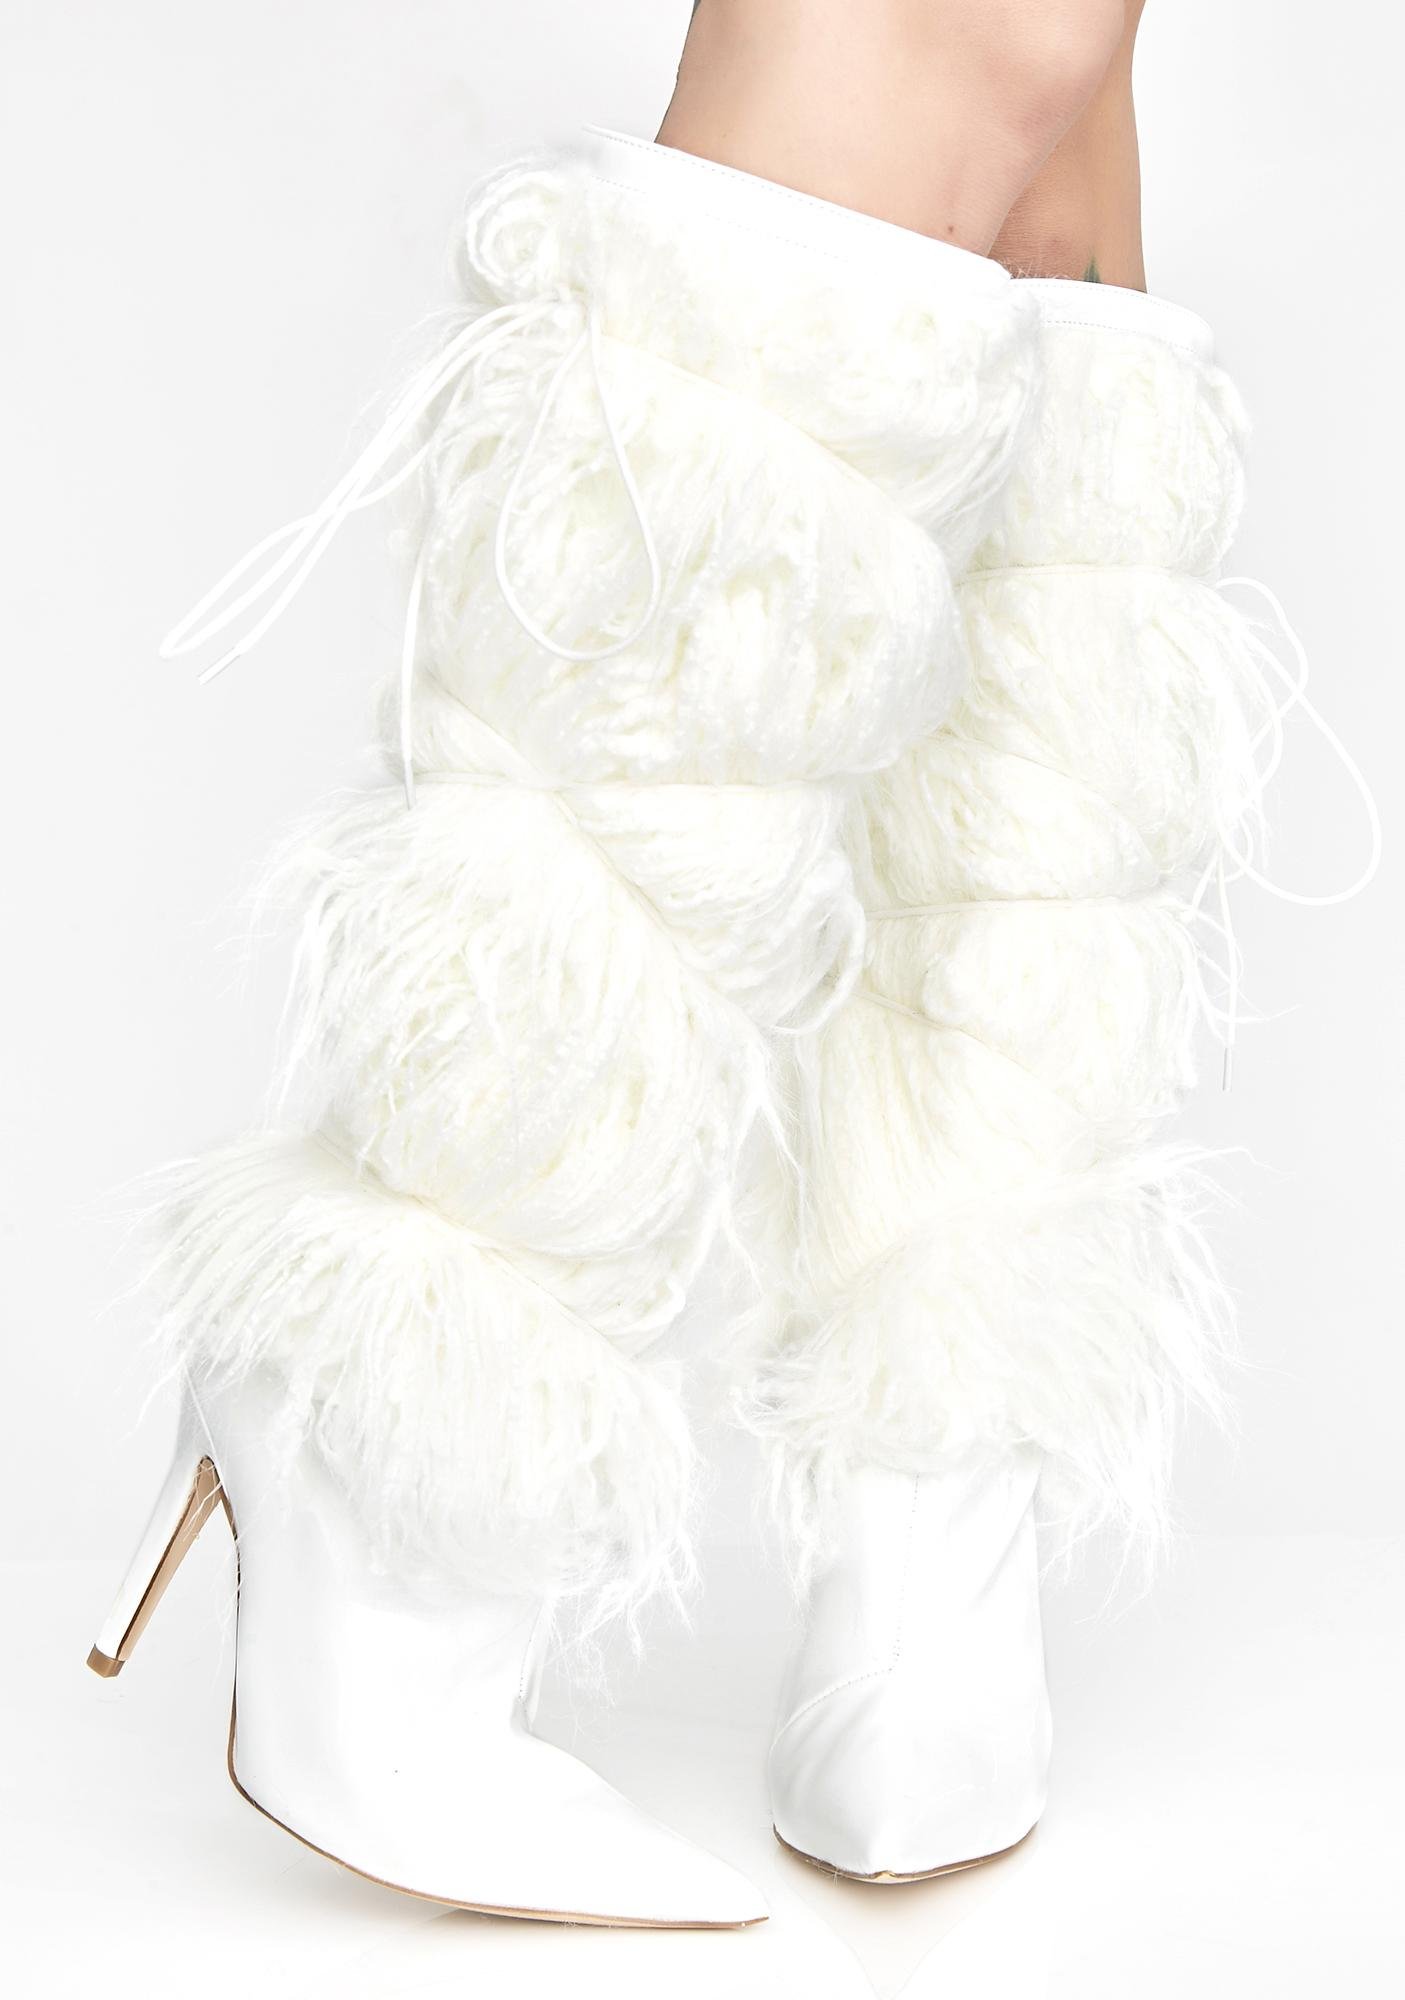 Snow Diva Hustle Fuzzy Boots